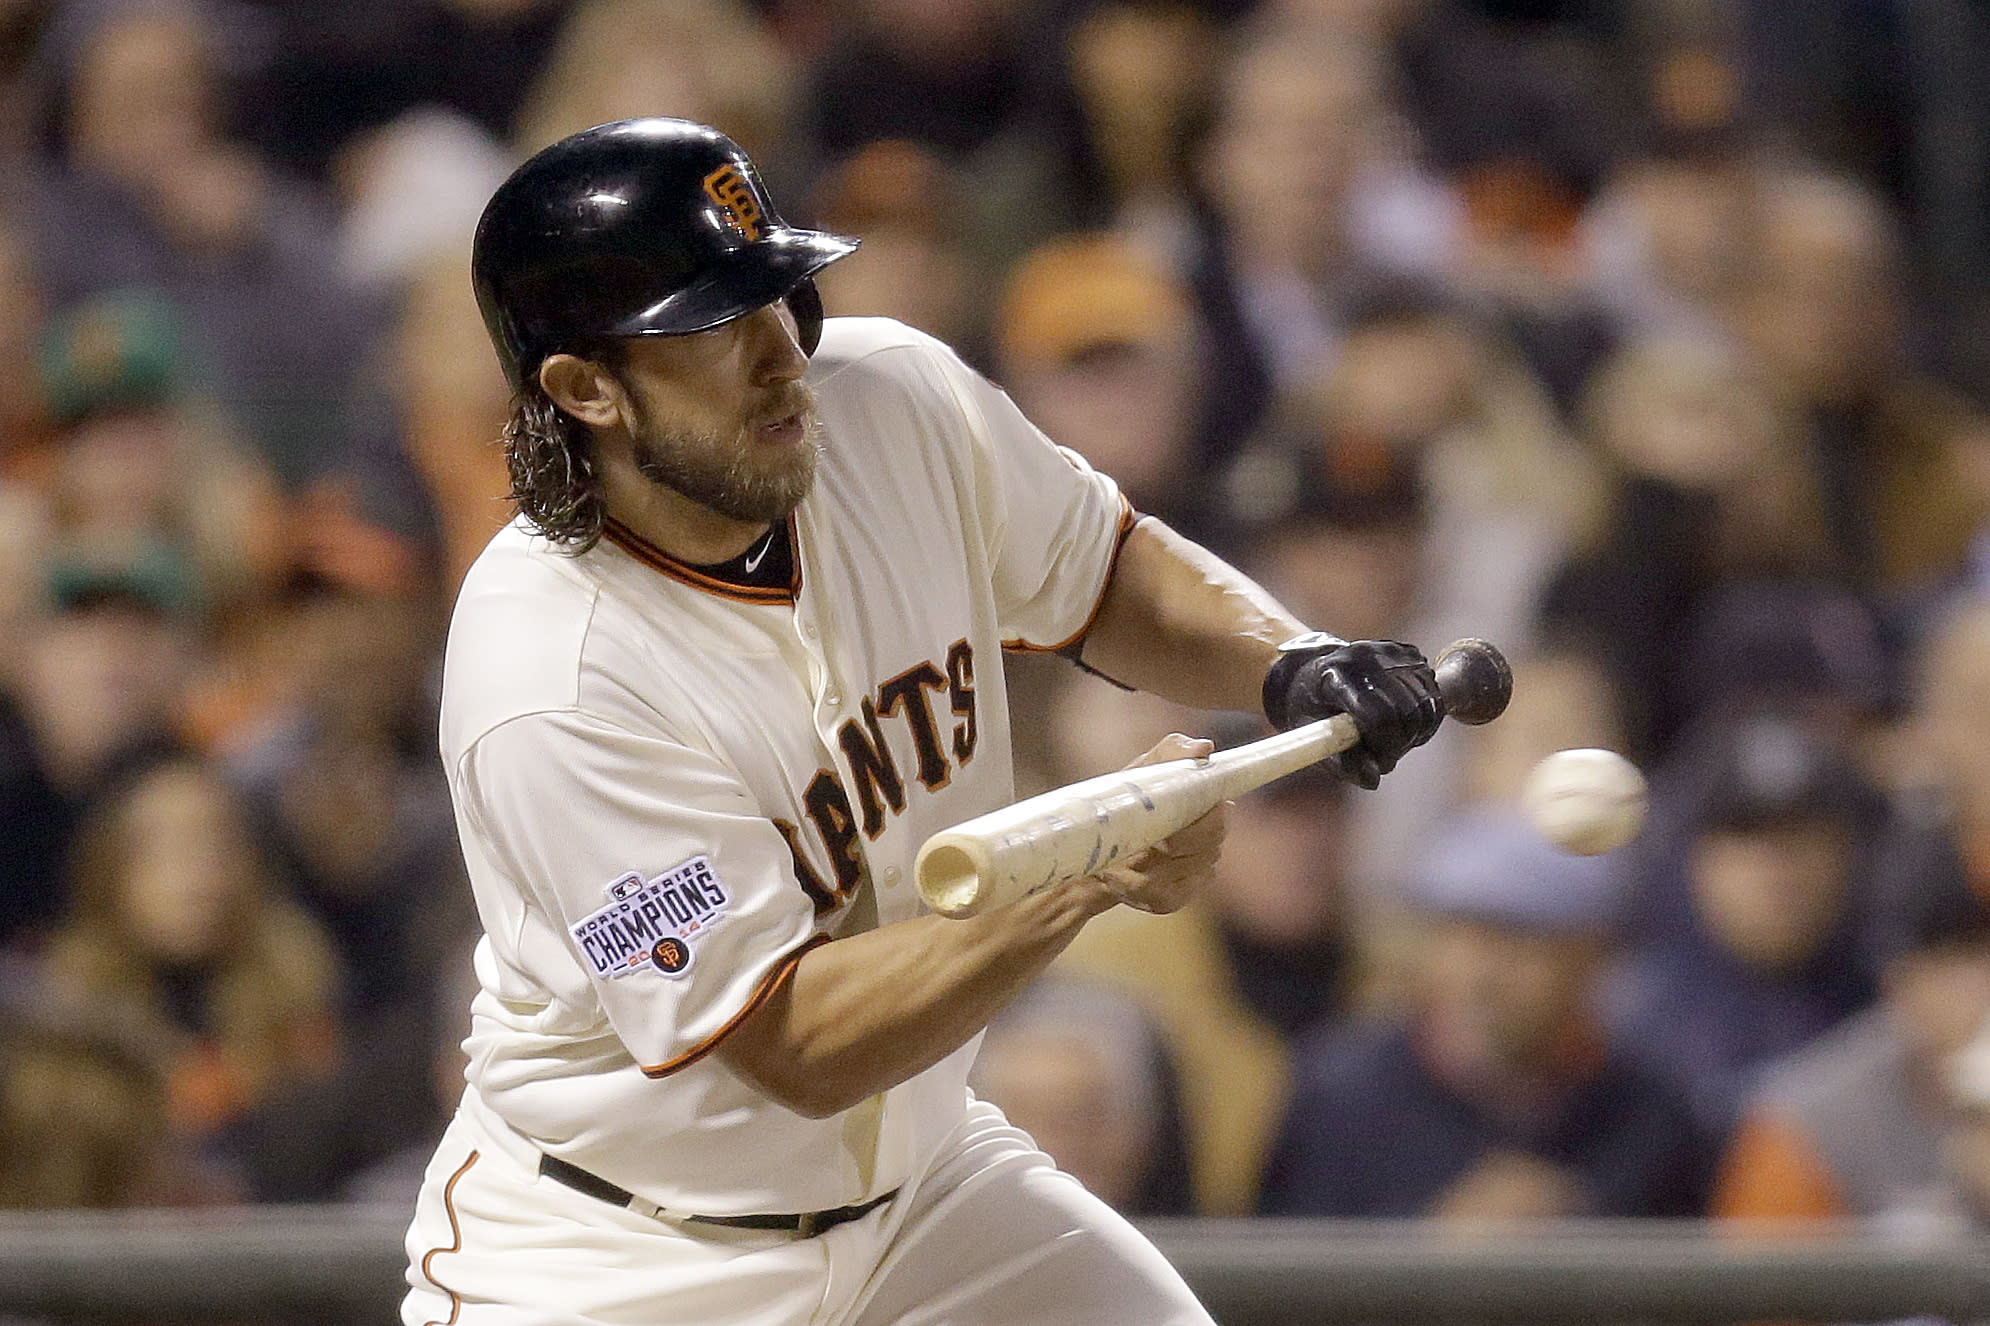 Madison Bumgarner is not happy about Max Scherzer's DH ...